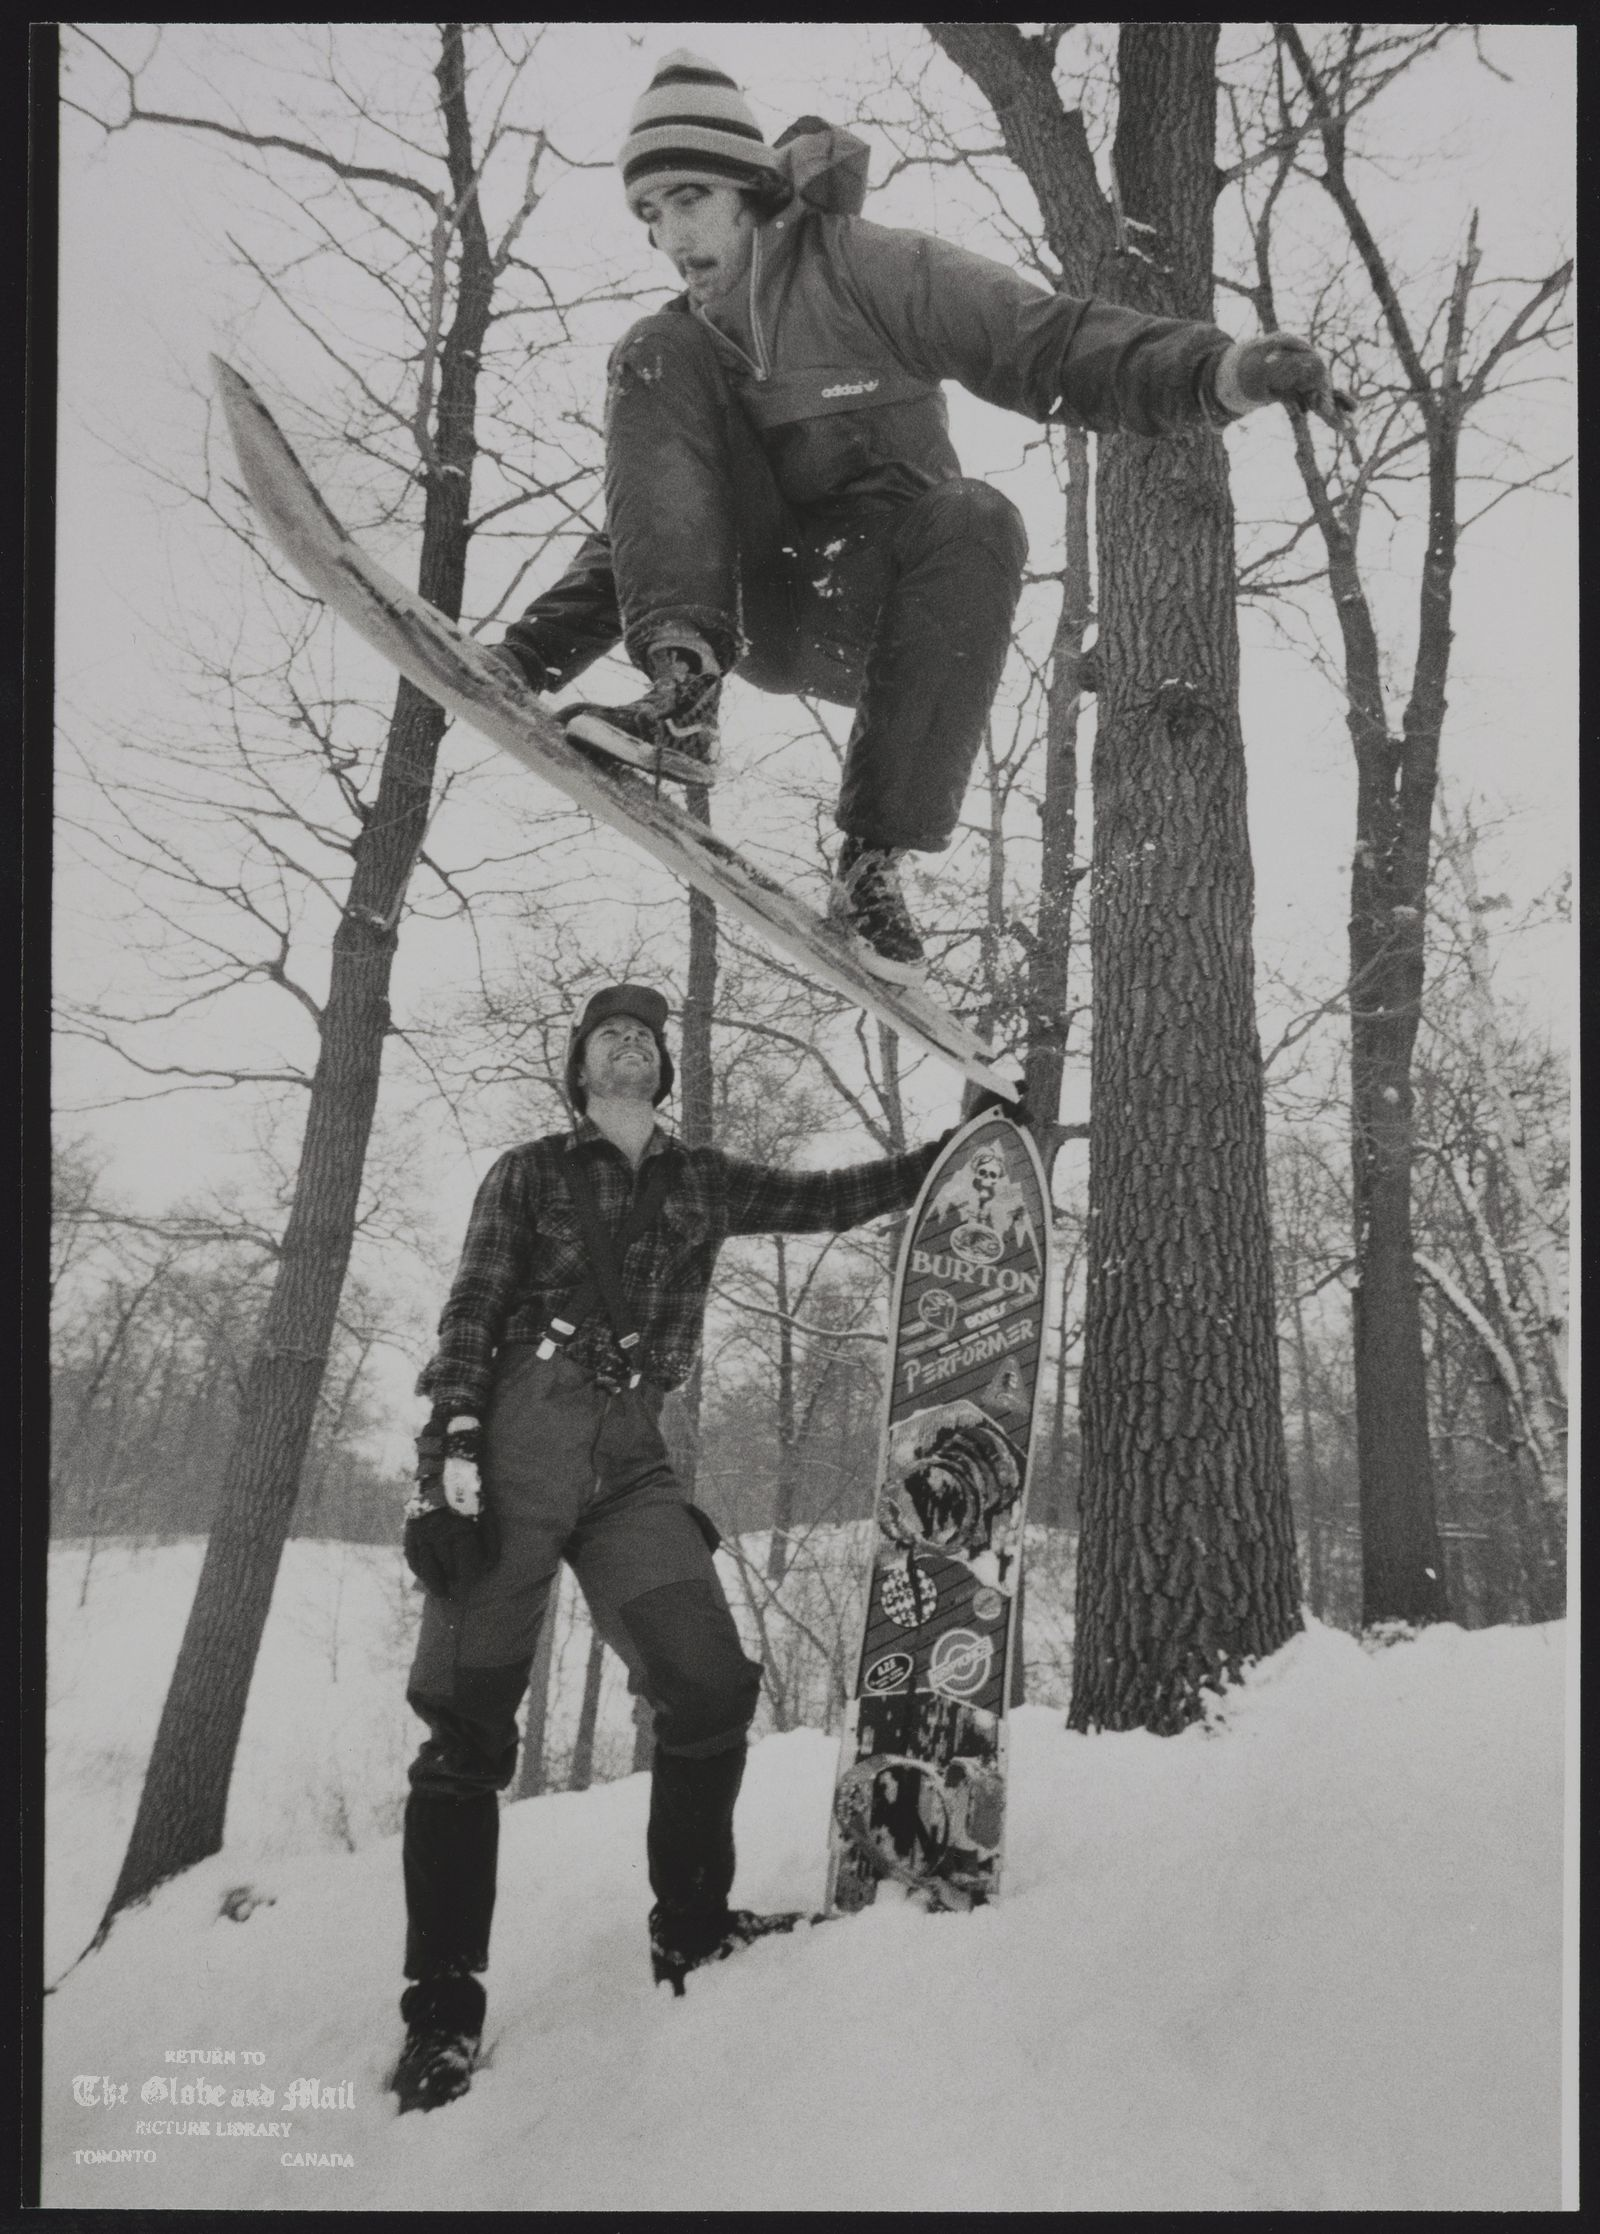 SNOWBOARDS Riding snowboard, Greg Lowe flies high off jump in Toronto's High Park as his friend Peter Wheldrake watches. Both are members of Hogtown Snowboard Team